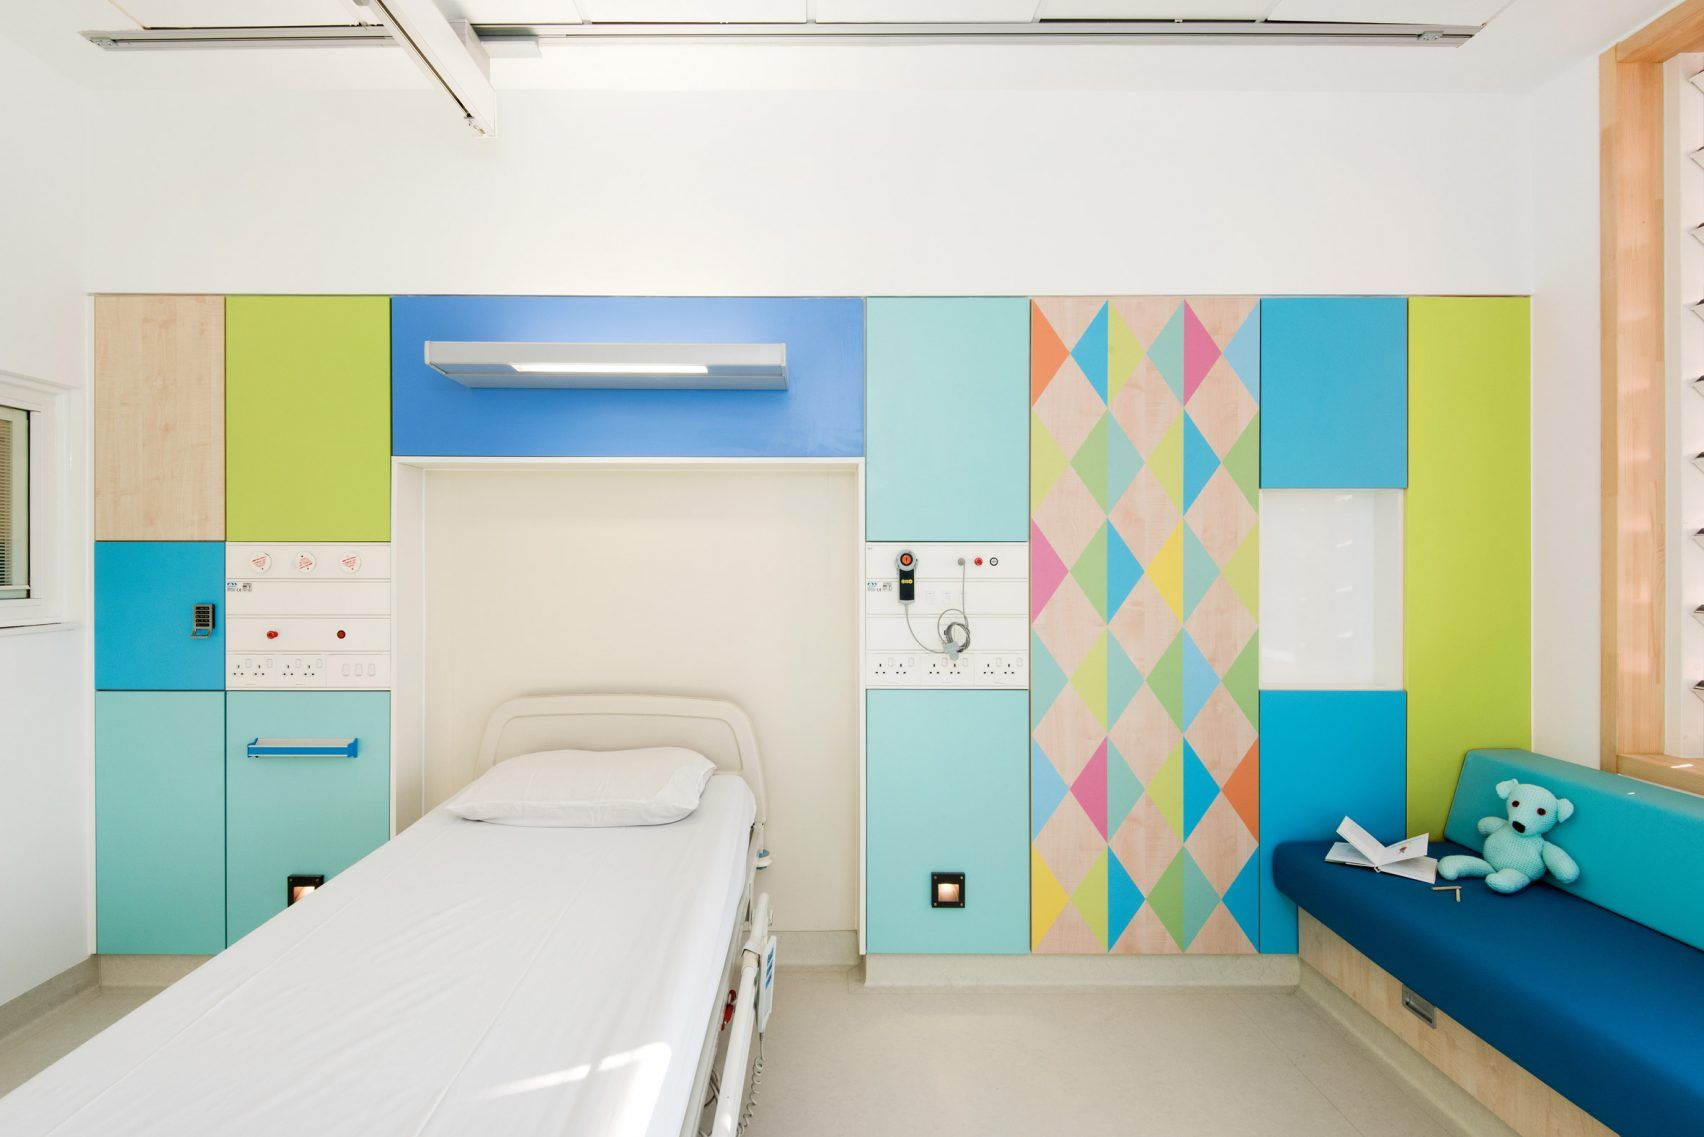 Morag Myerscough brightens the wards of Sheffield Childrens